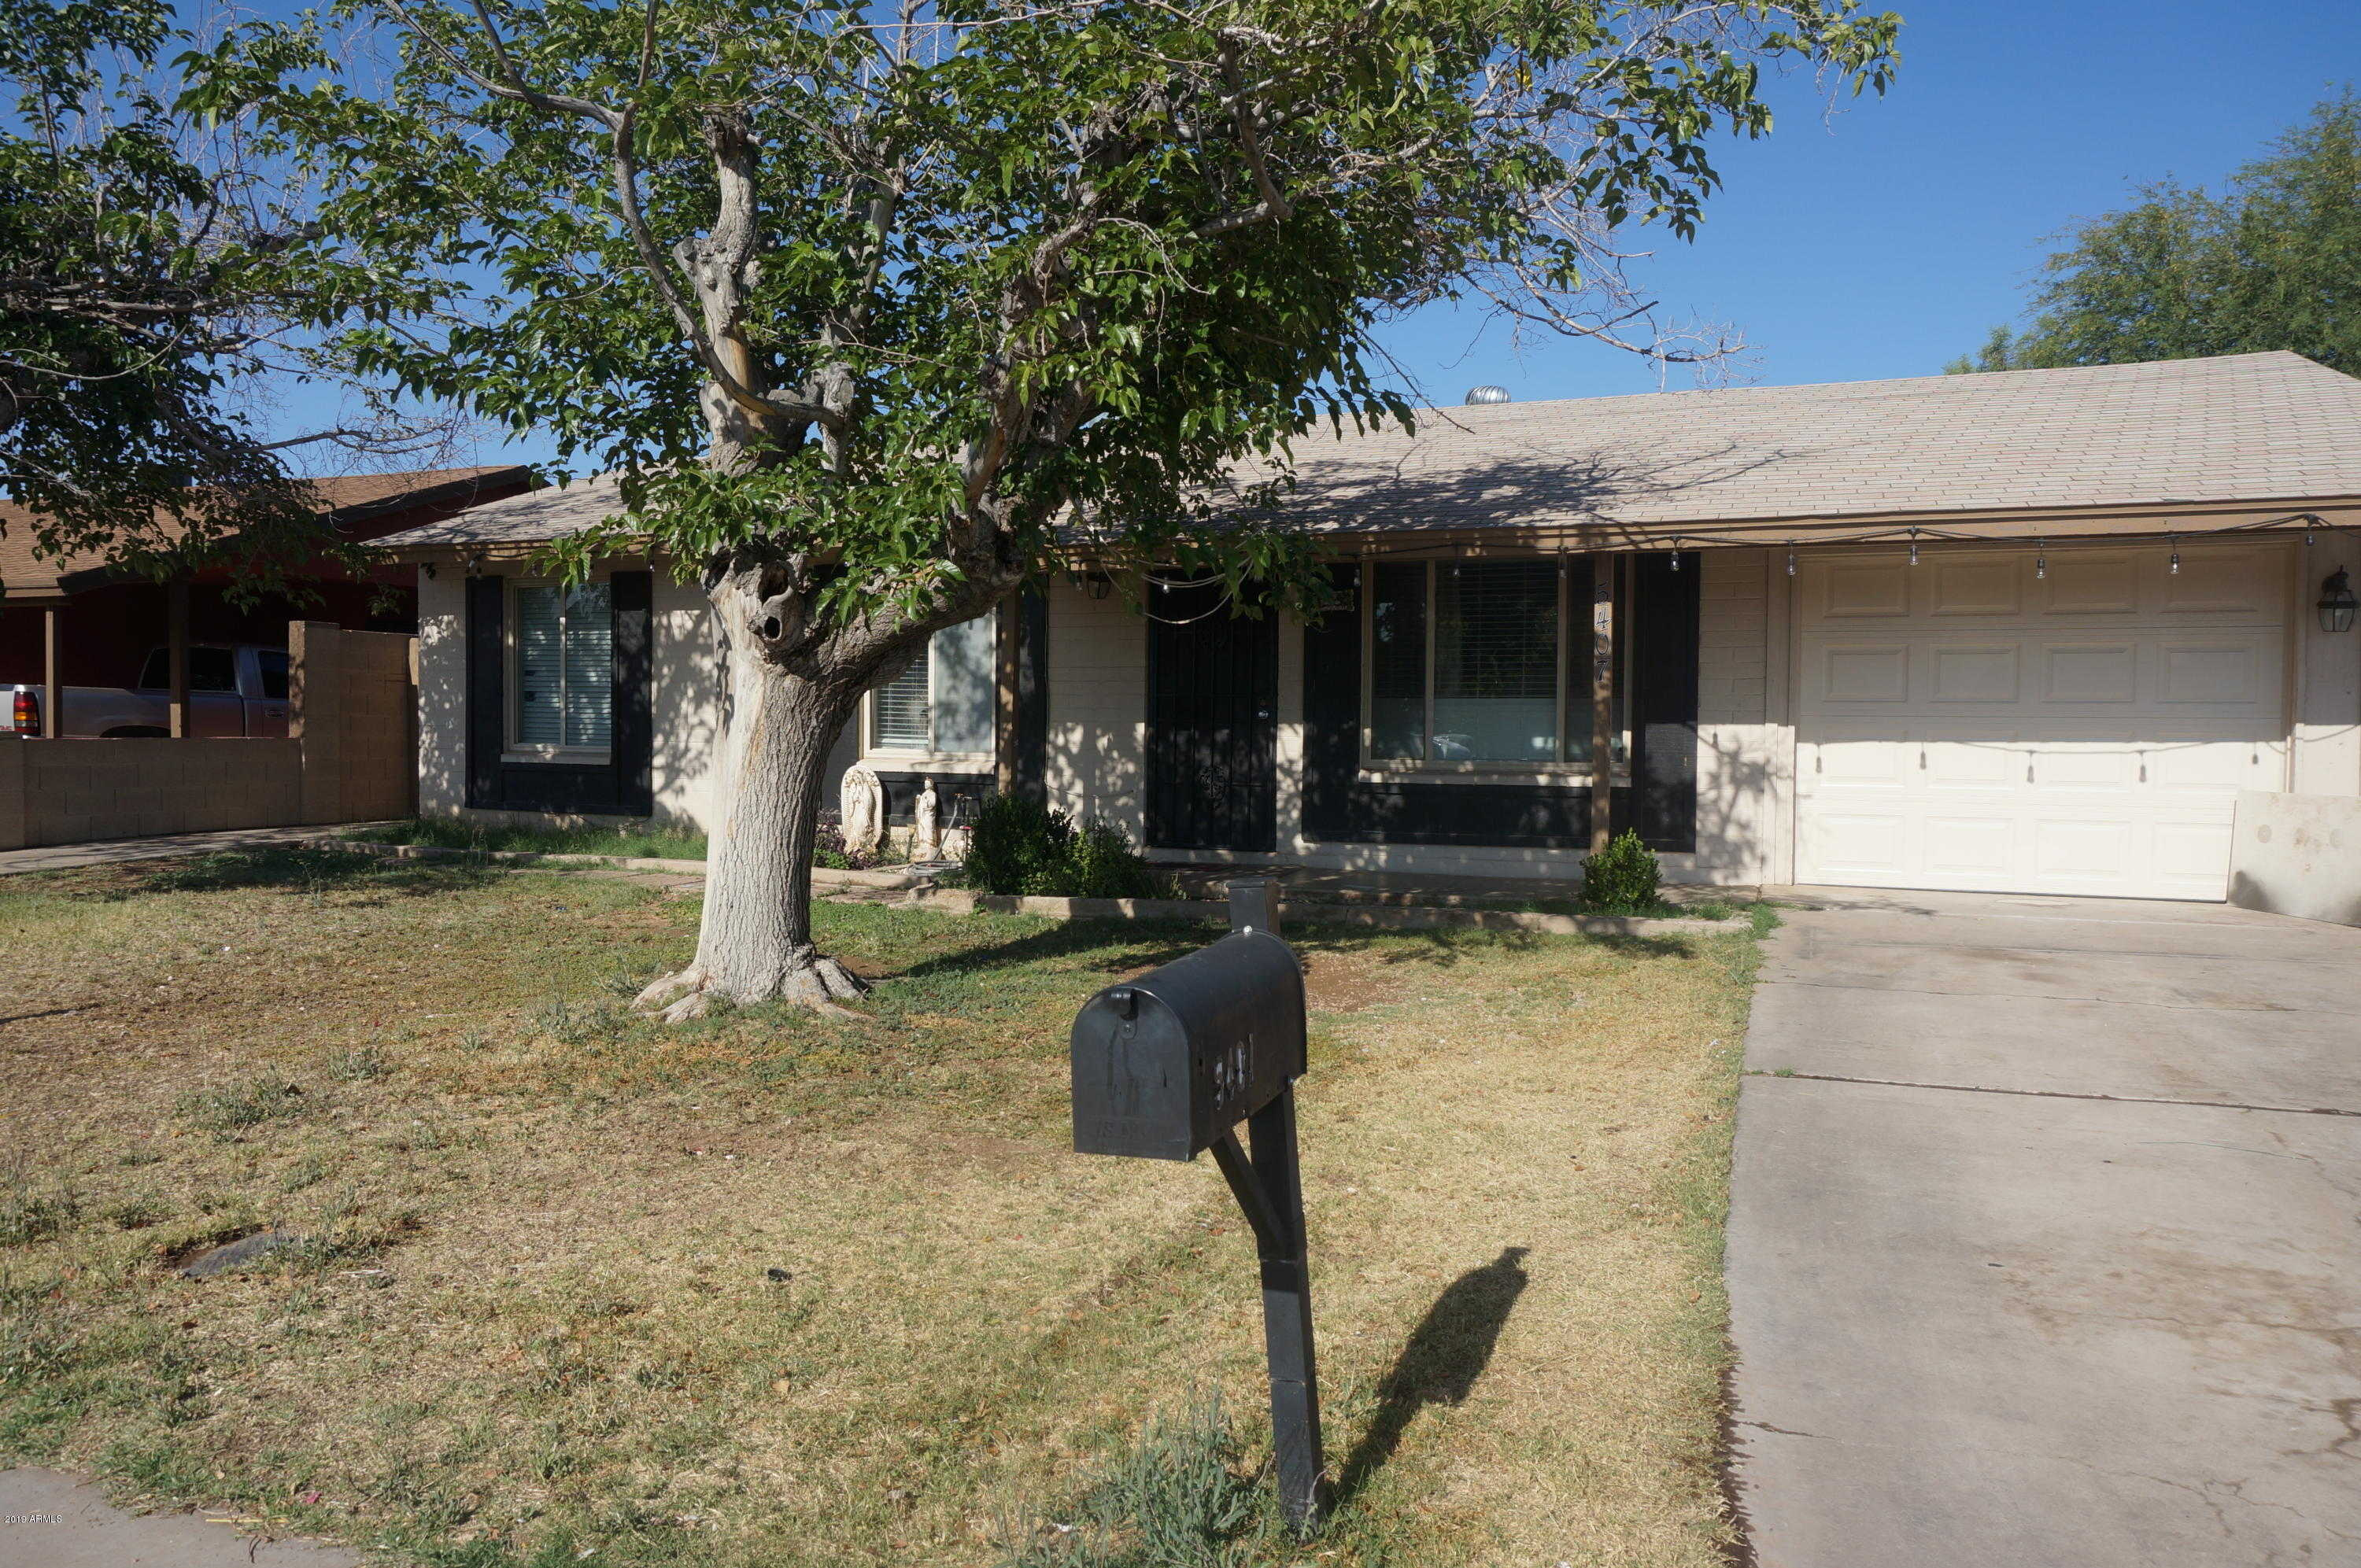 $200,000 - 4Br/2Ba - Home for Sale in Meadows 2, Glendale